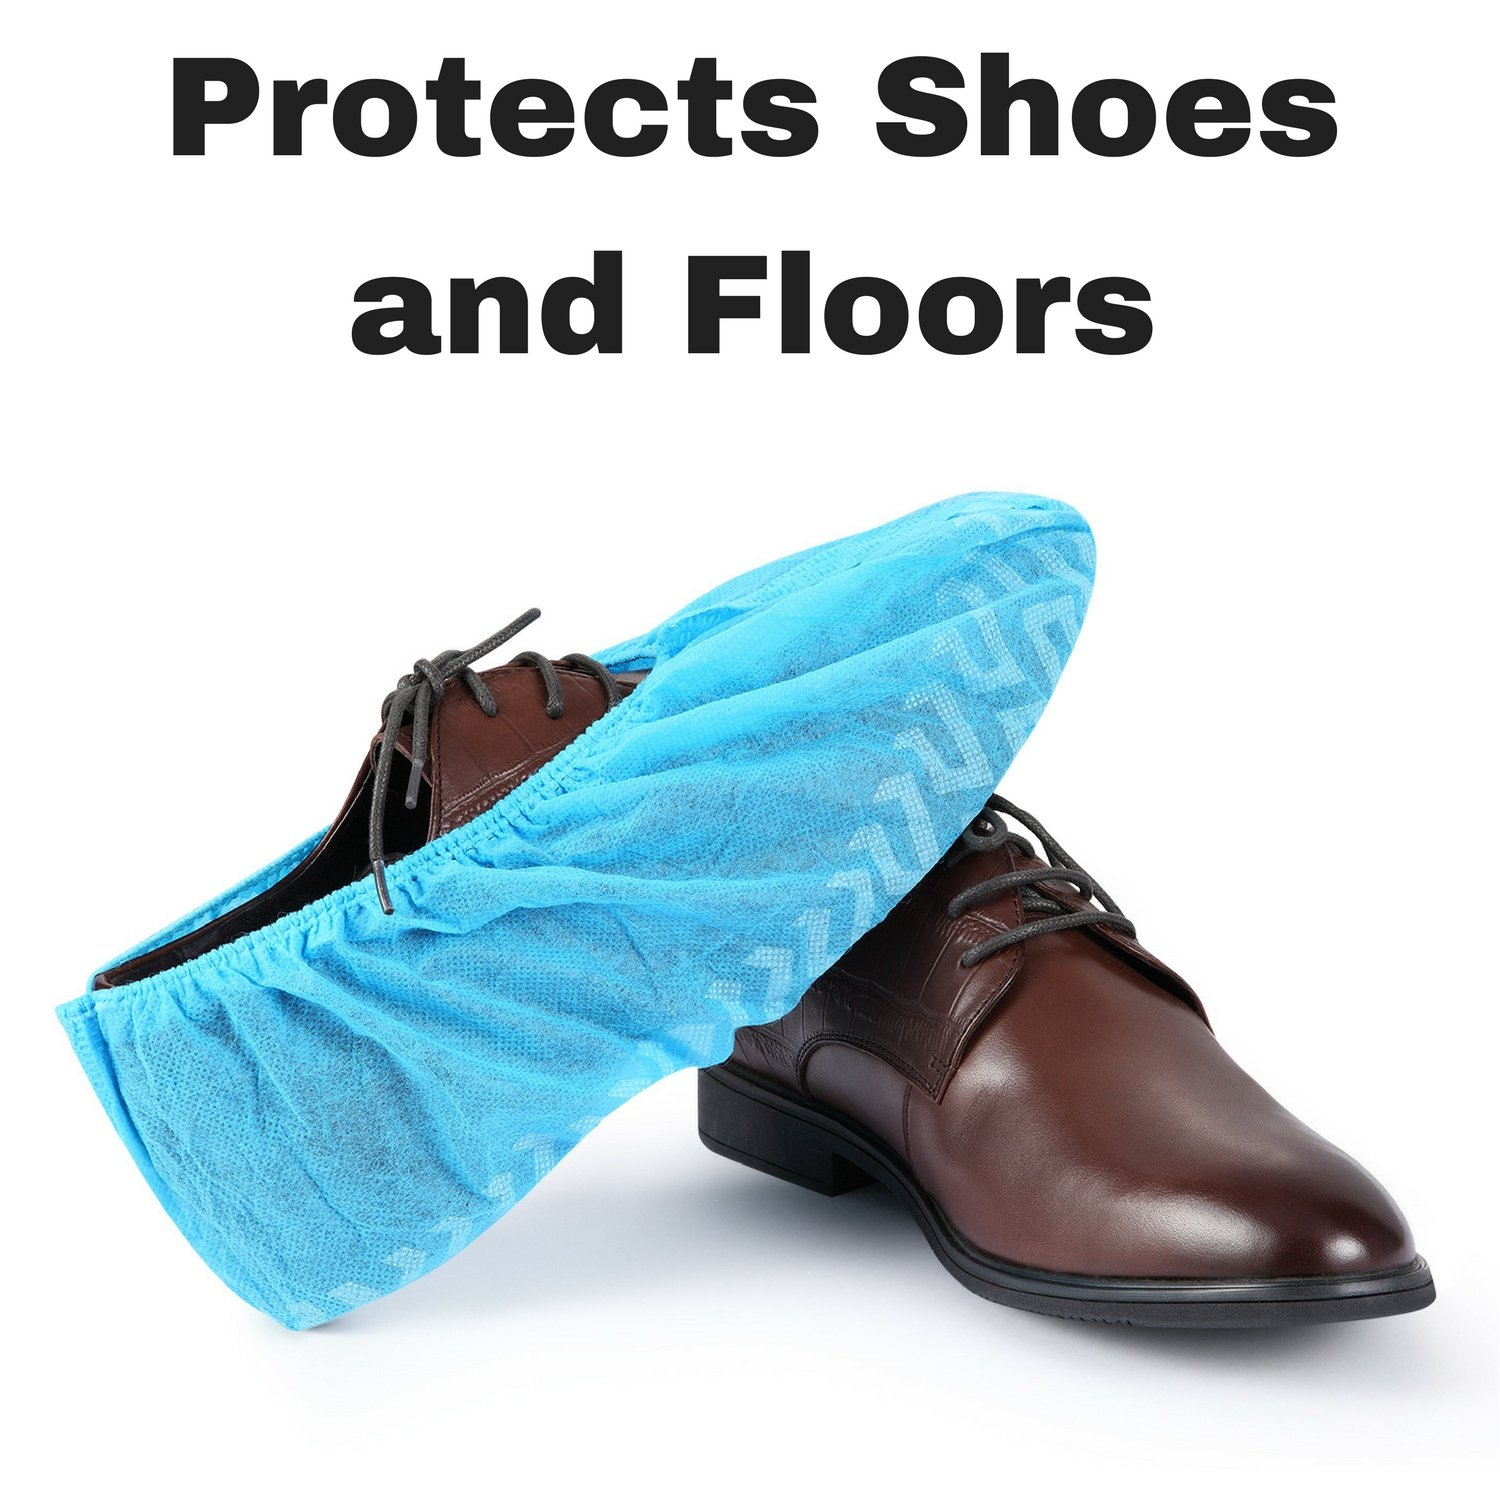 MIFFLIN Disposable Shoe Covers (Blue, 120 Pieces) Durable Boot Covers, Non-Slip Polypropylene, One Size Fits Most by MIFFLIN (Image #3)